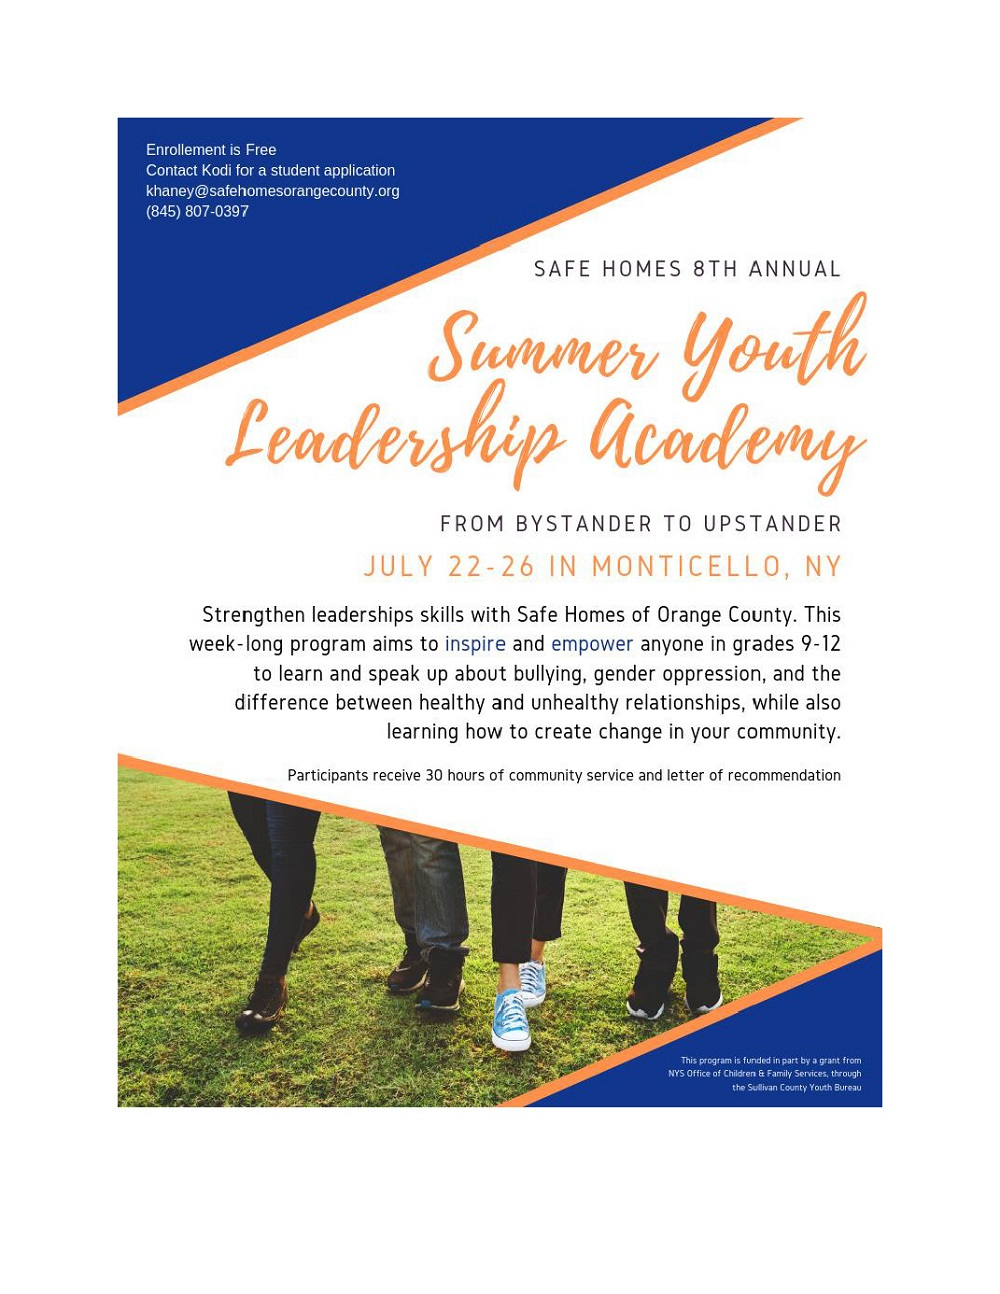 2019 Summer Youth Leadership Academy